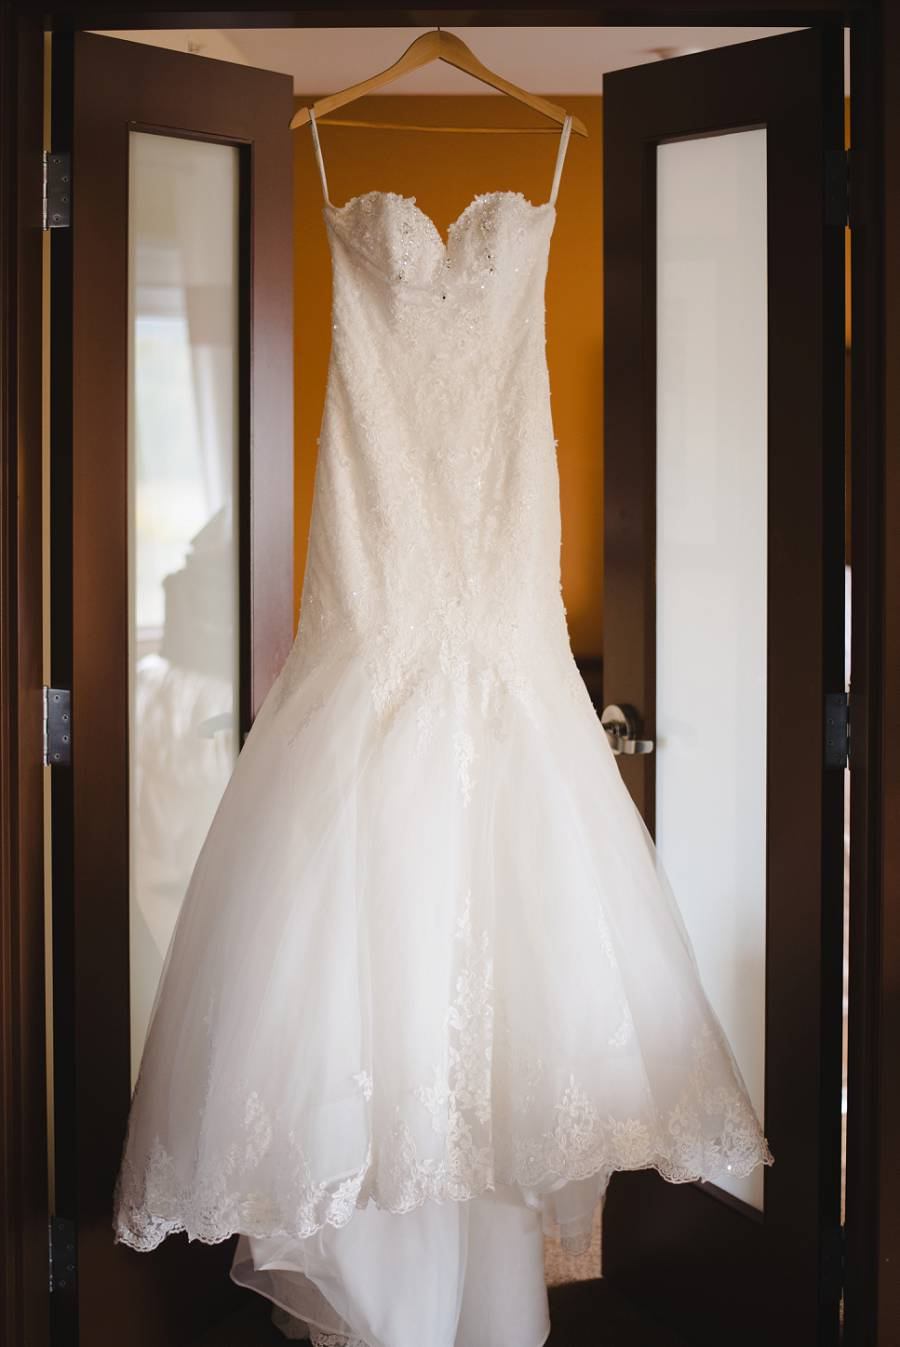 wedding dress hanging from a doorway